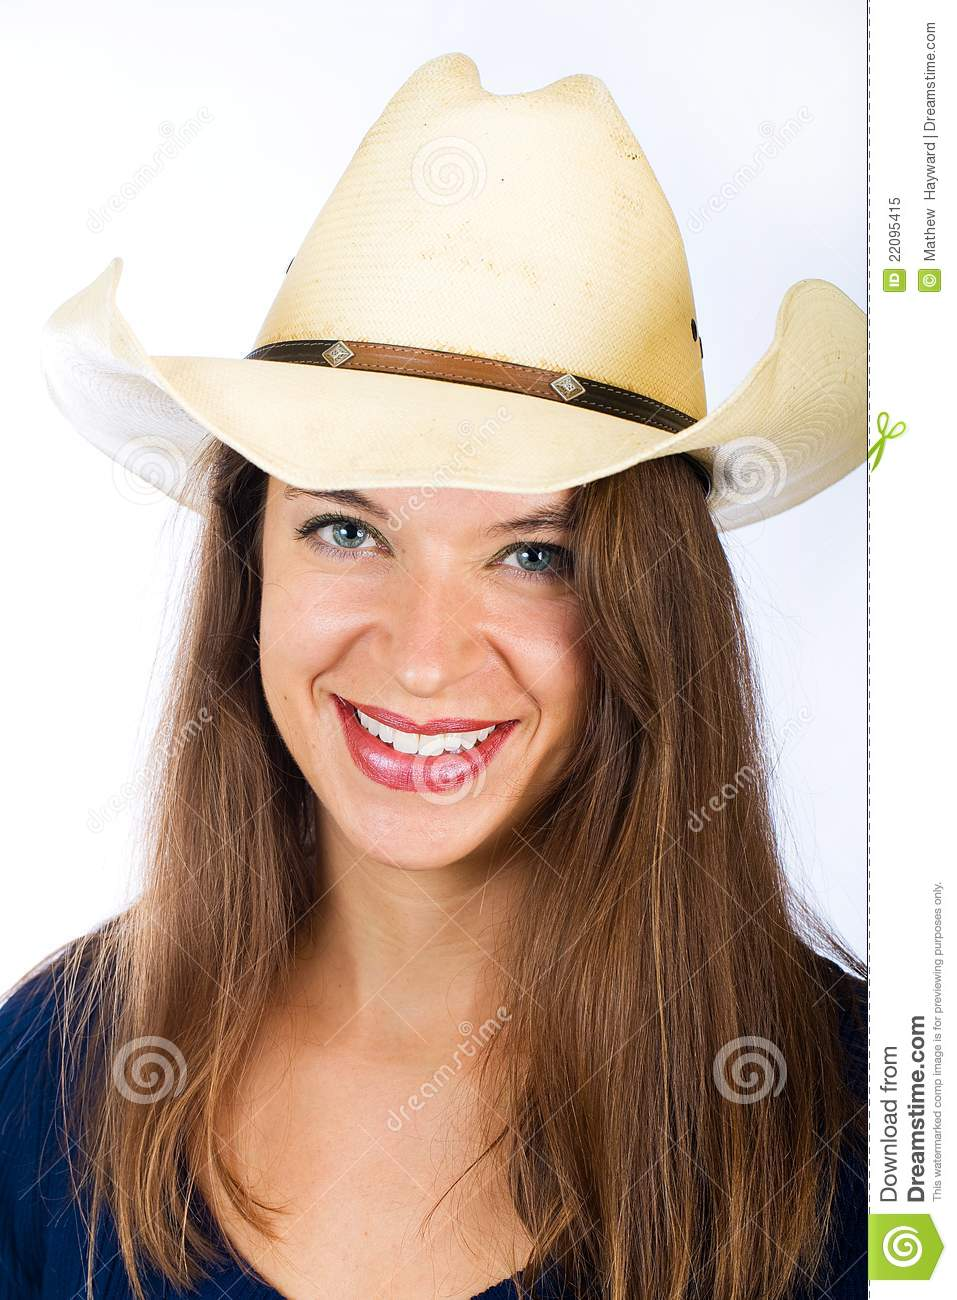 A pretty woman wearing a cowboy hat. She has a friendly smile on her face. 33c7e9c93400